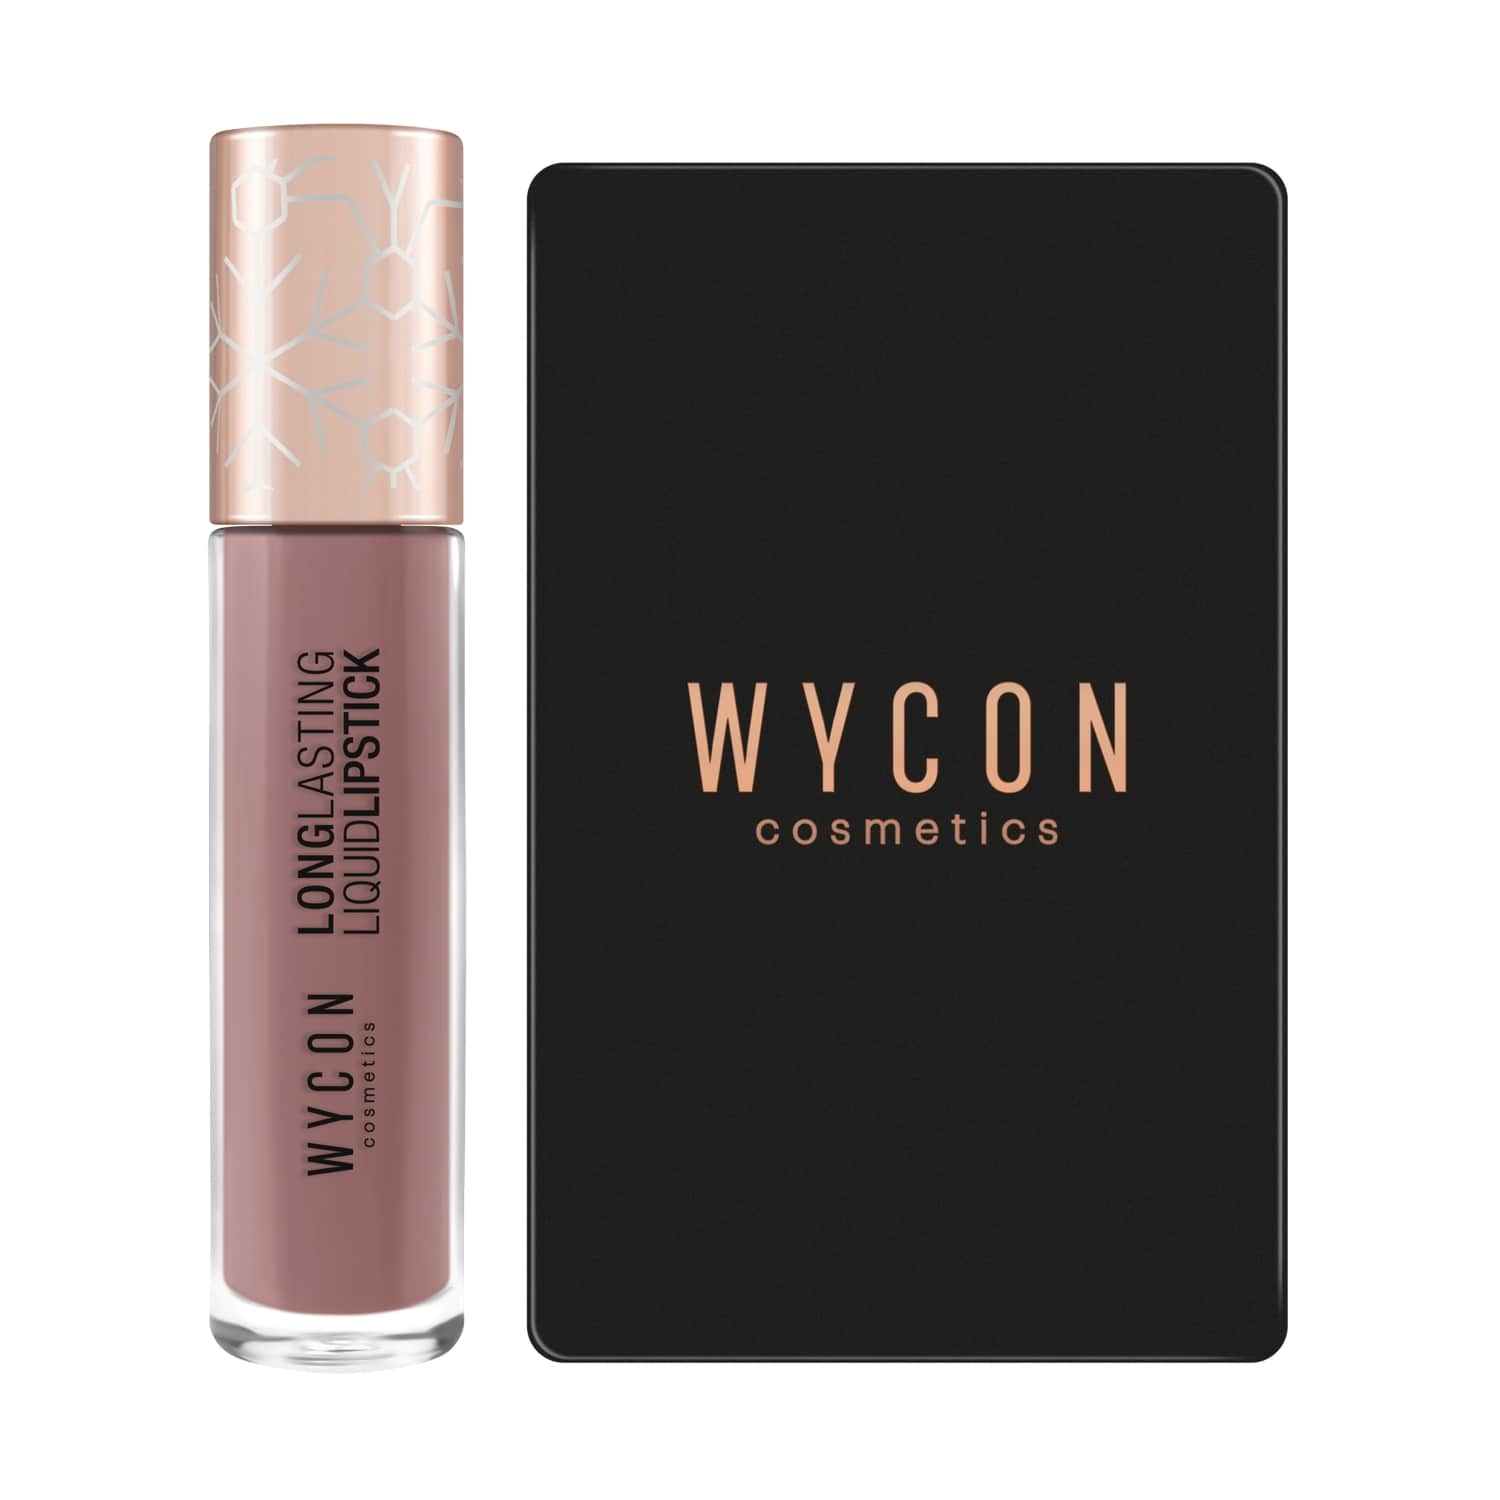 wycon-snow-diva-holiday-collection-kit-long-lasting-liquid-lipstick-specchio-02-nude